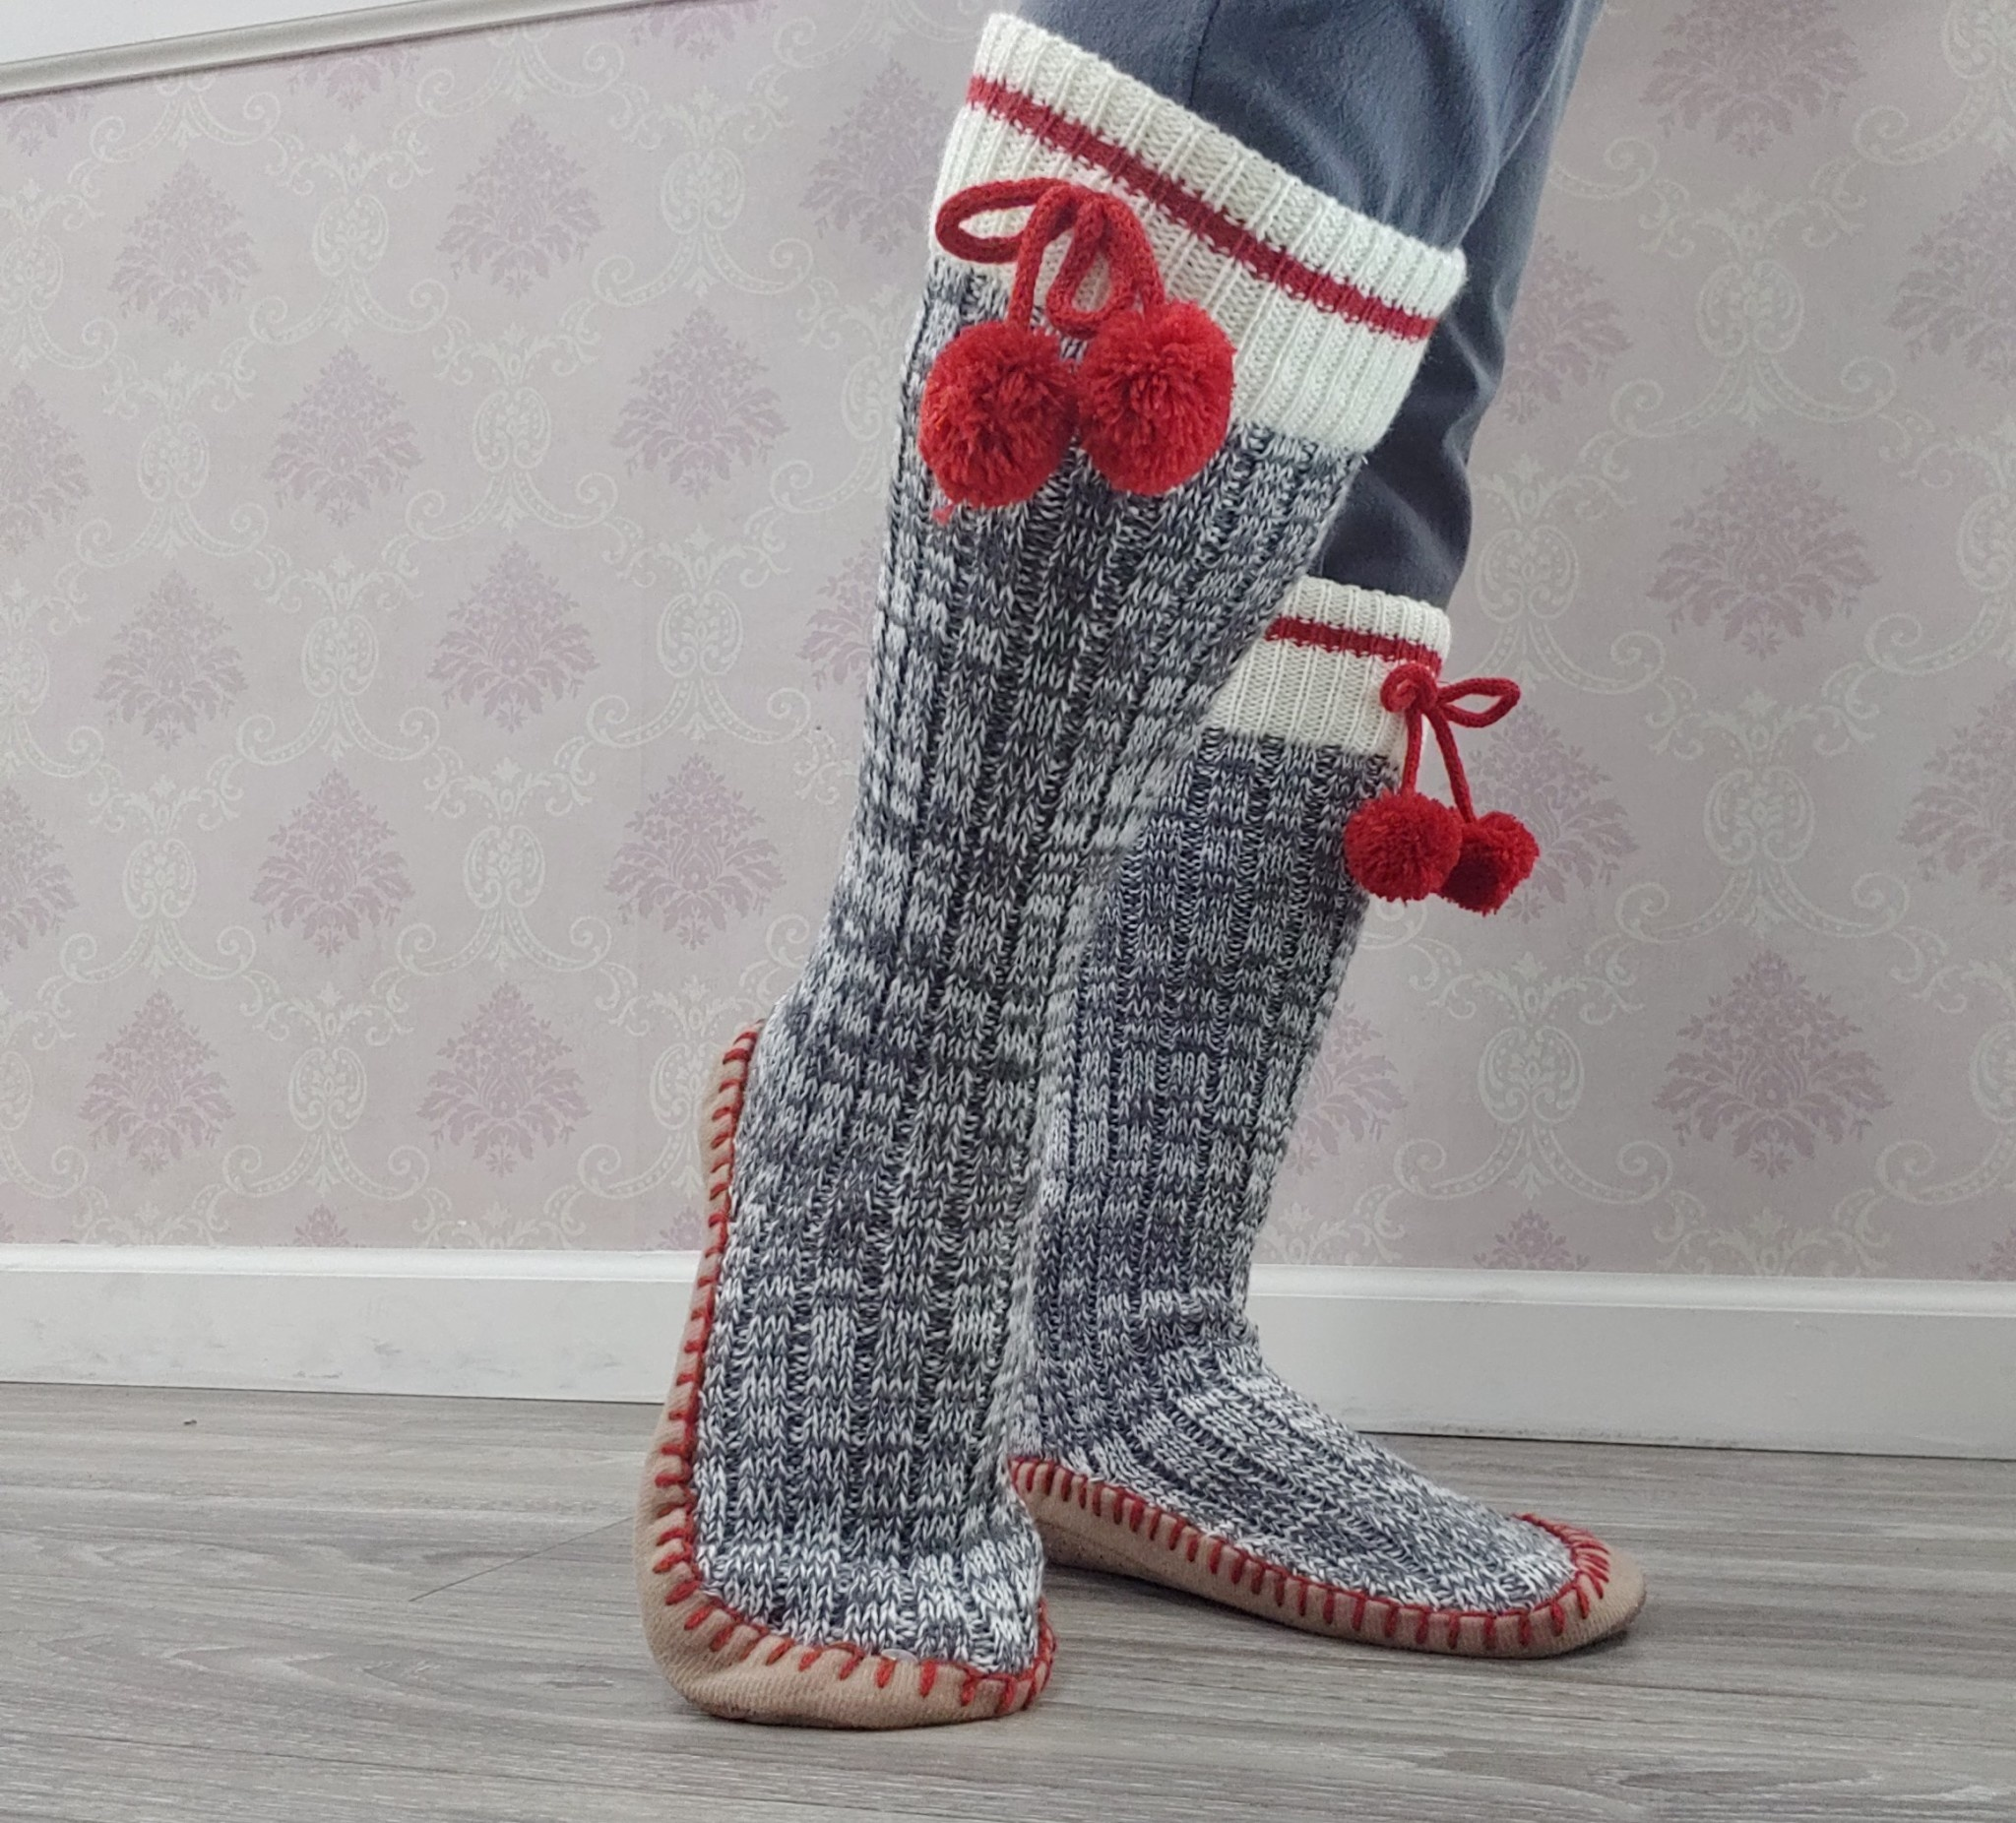 Moccasin Lounge socks with non-slip sole